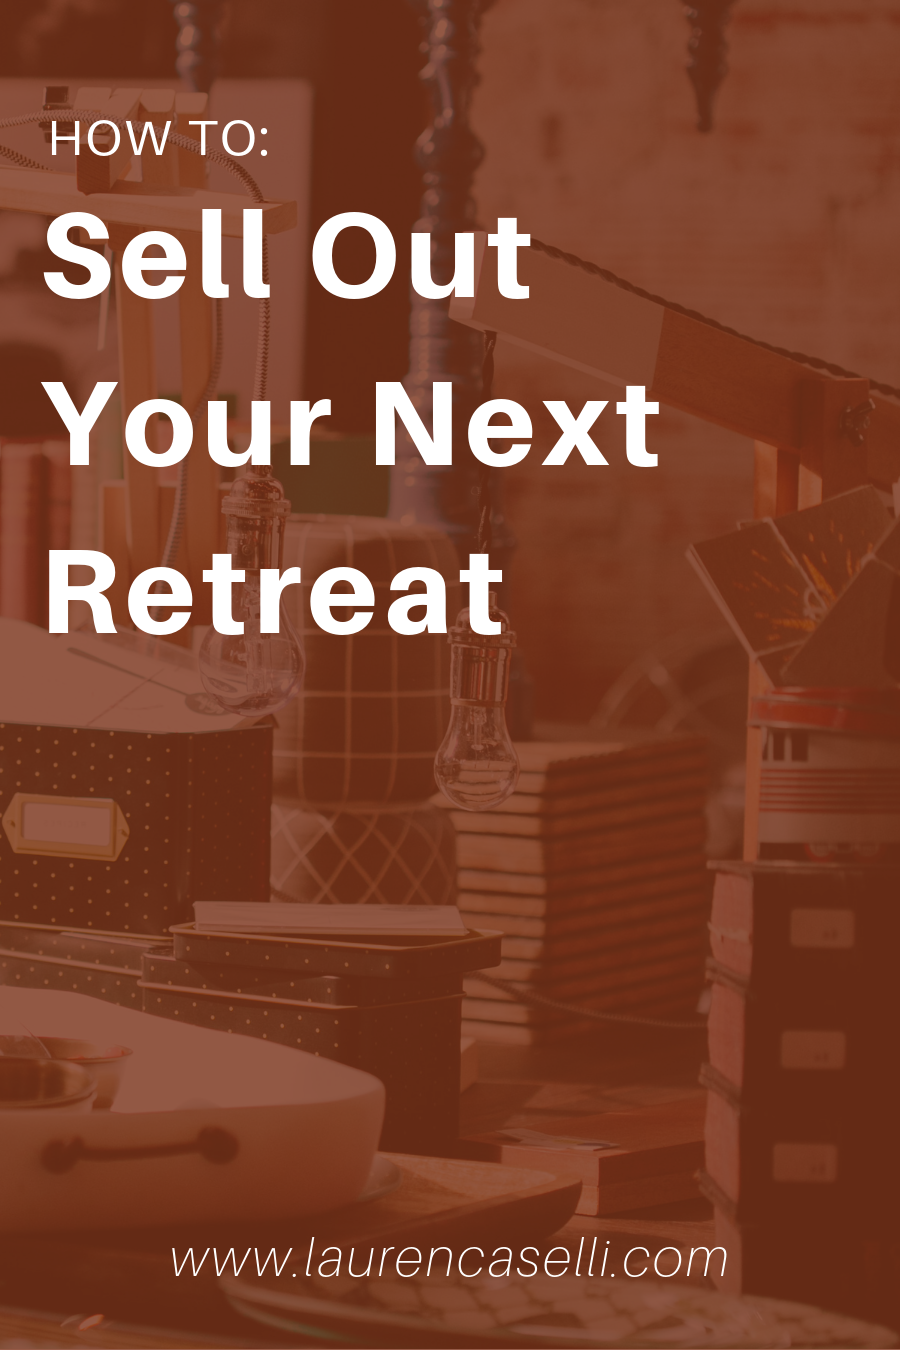 Launching a retreat? Here's how you can make sure you sell it out.